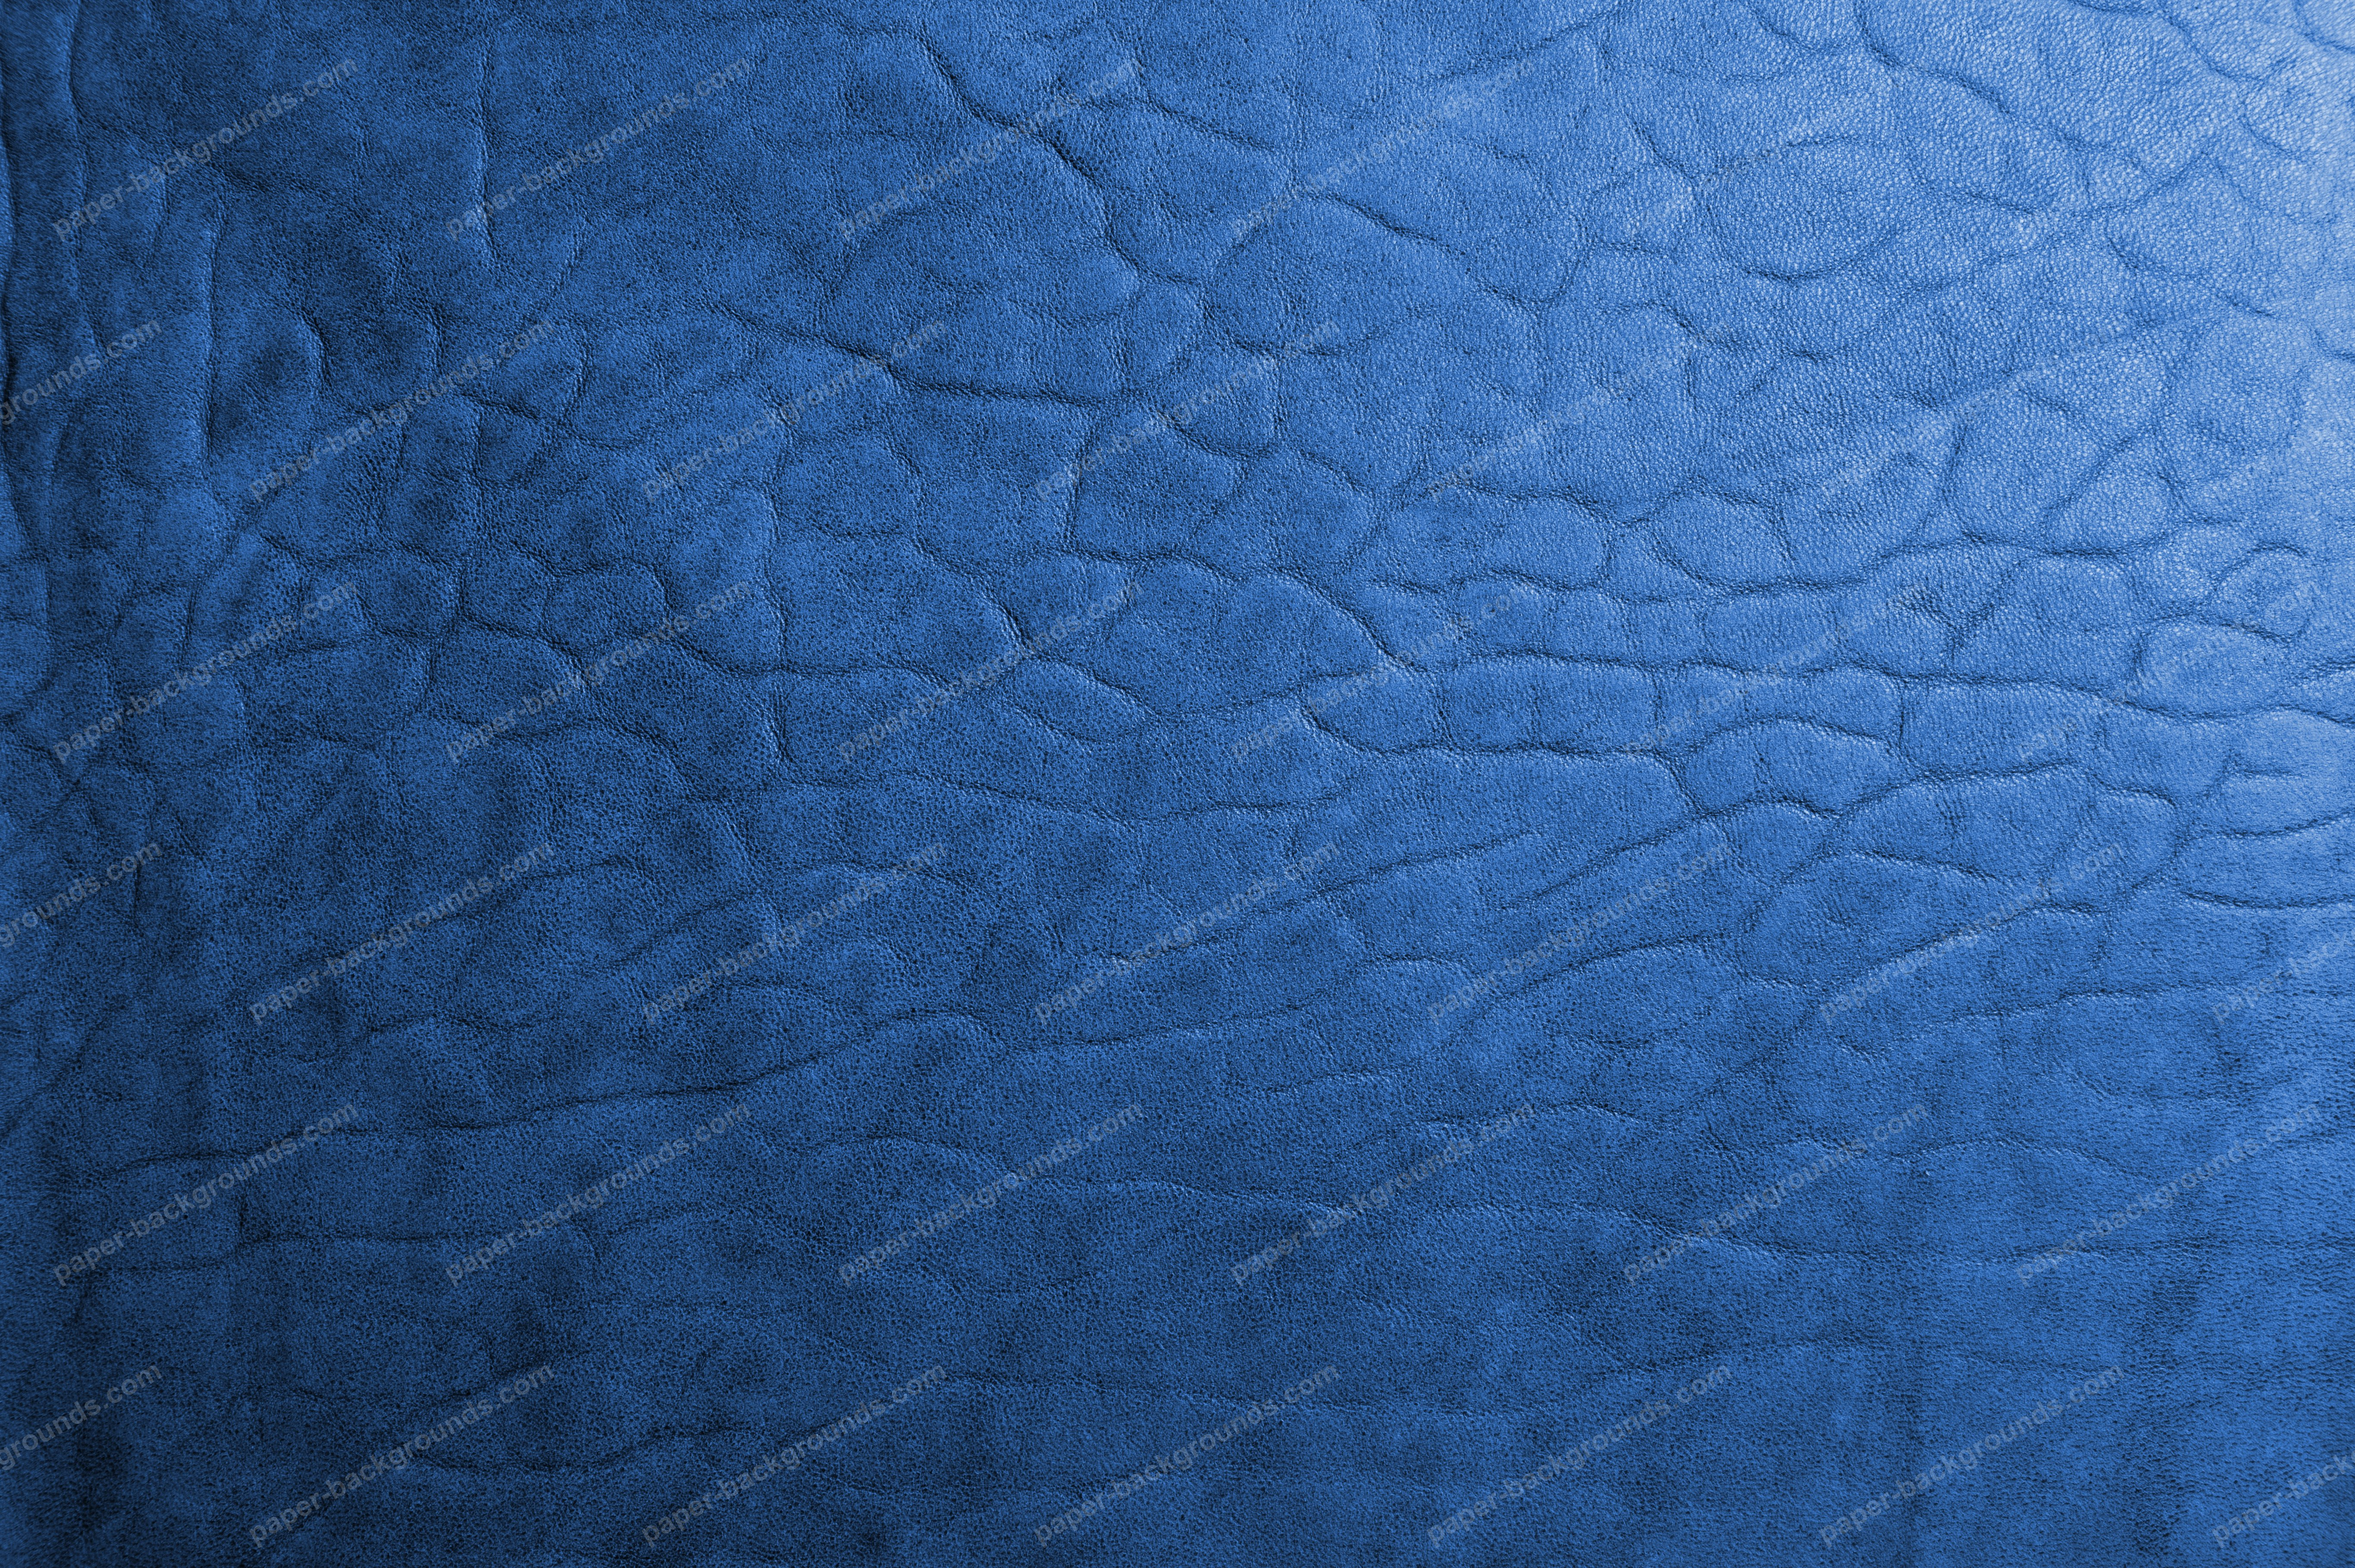 Paper Backgrounds Dark Blue Background Texture 5460x3636